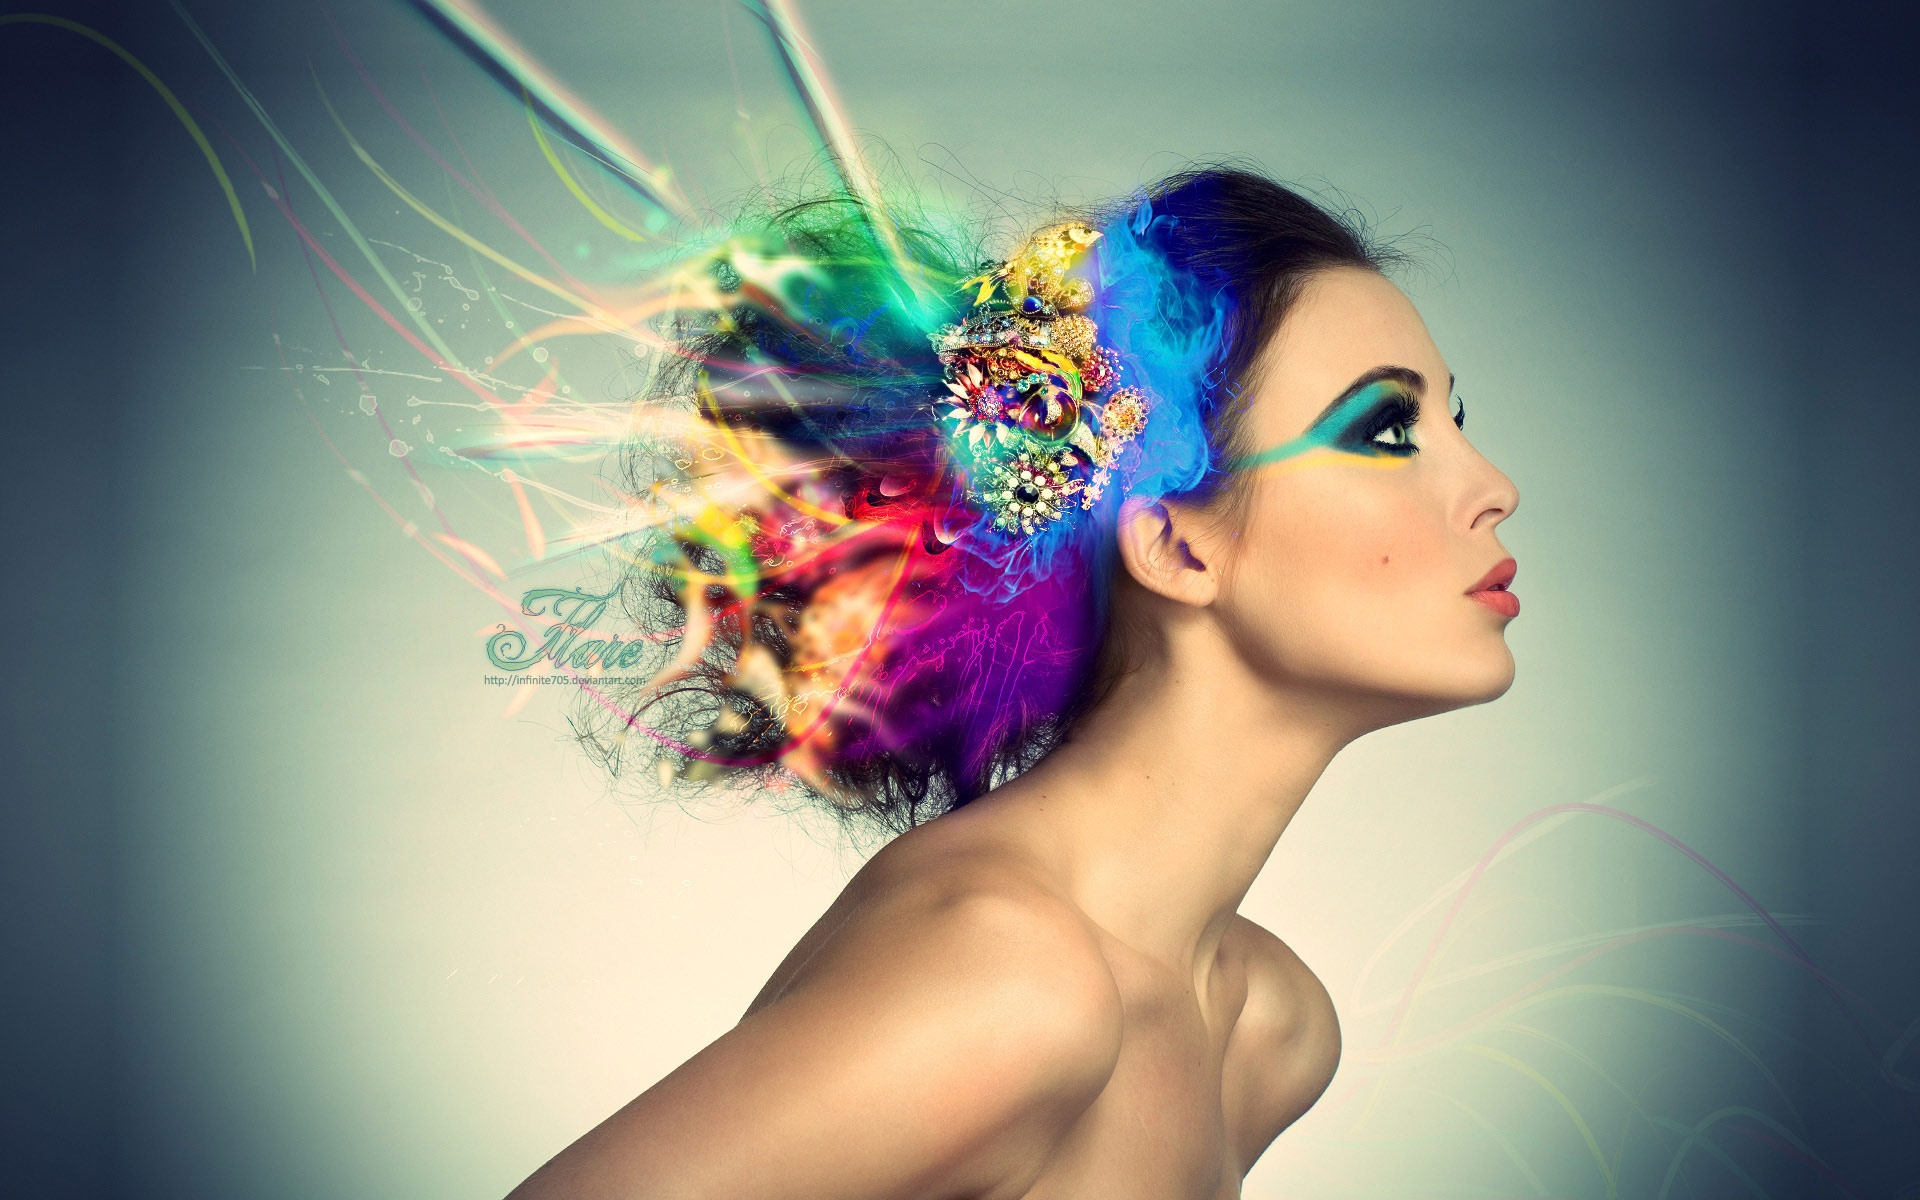 hair design backgrounds - photo #10